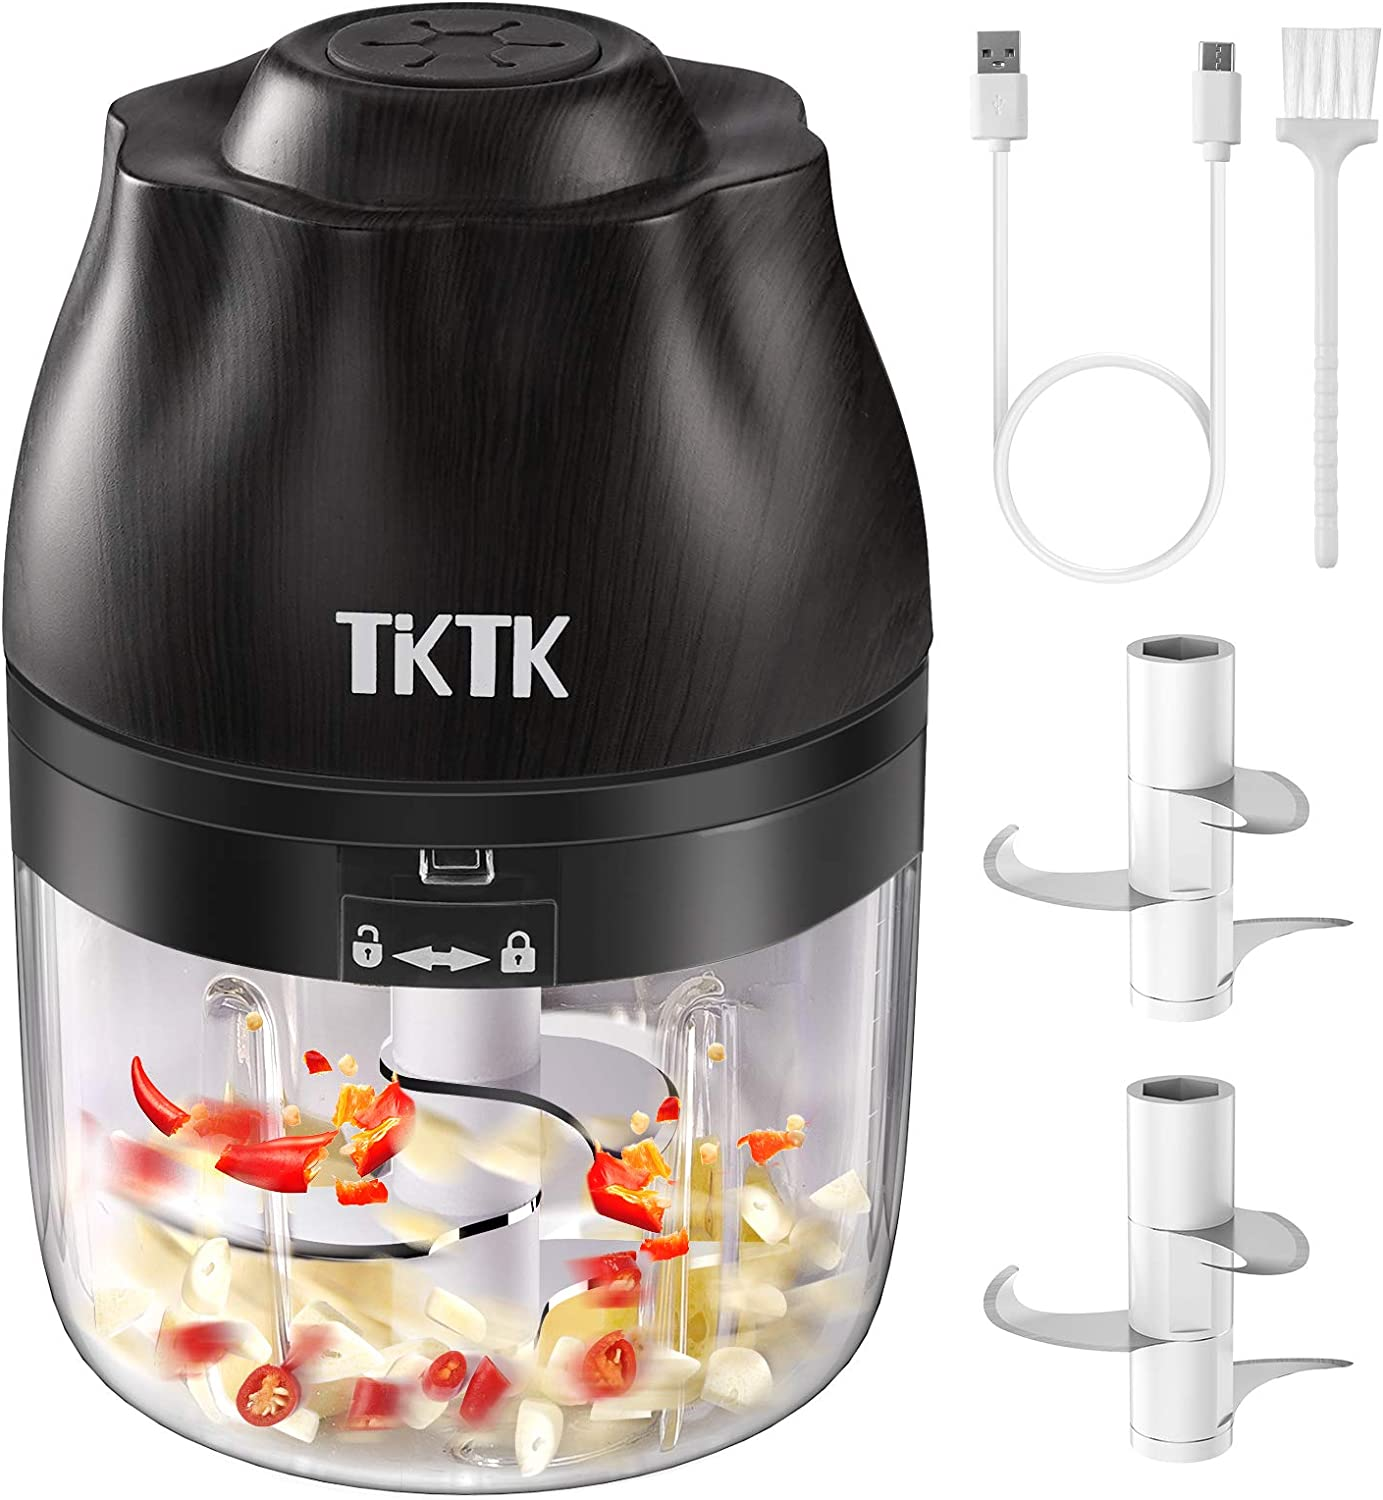 Electric Food Chopper, TKTK Onion Chopper Mini Food Processor Portable Garlic Chopper USB Charge Meat Slicer Cordless Food Mincer, for Chop Onion Ginger Vegetable Pepper Spice Meat Baby Food (250ML)